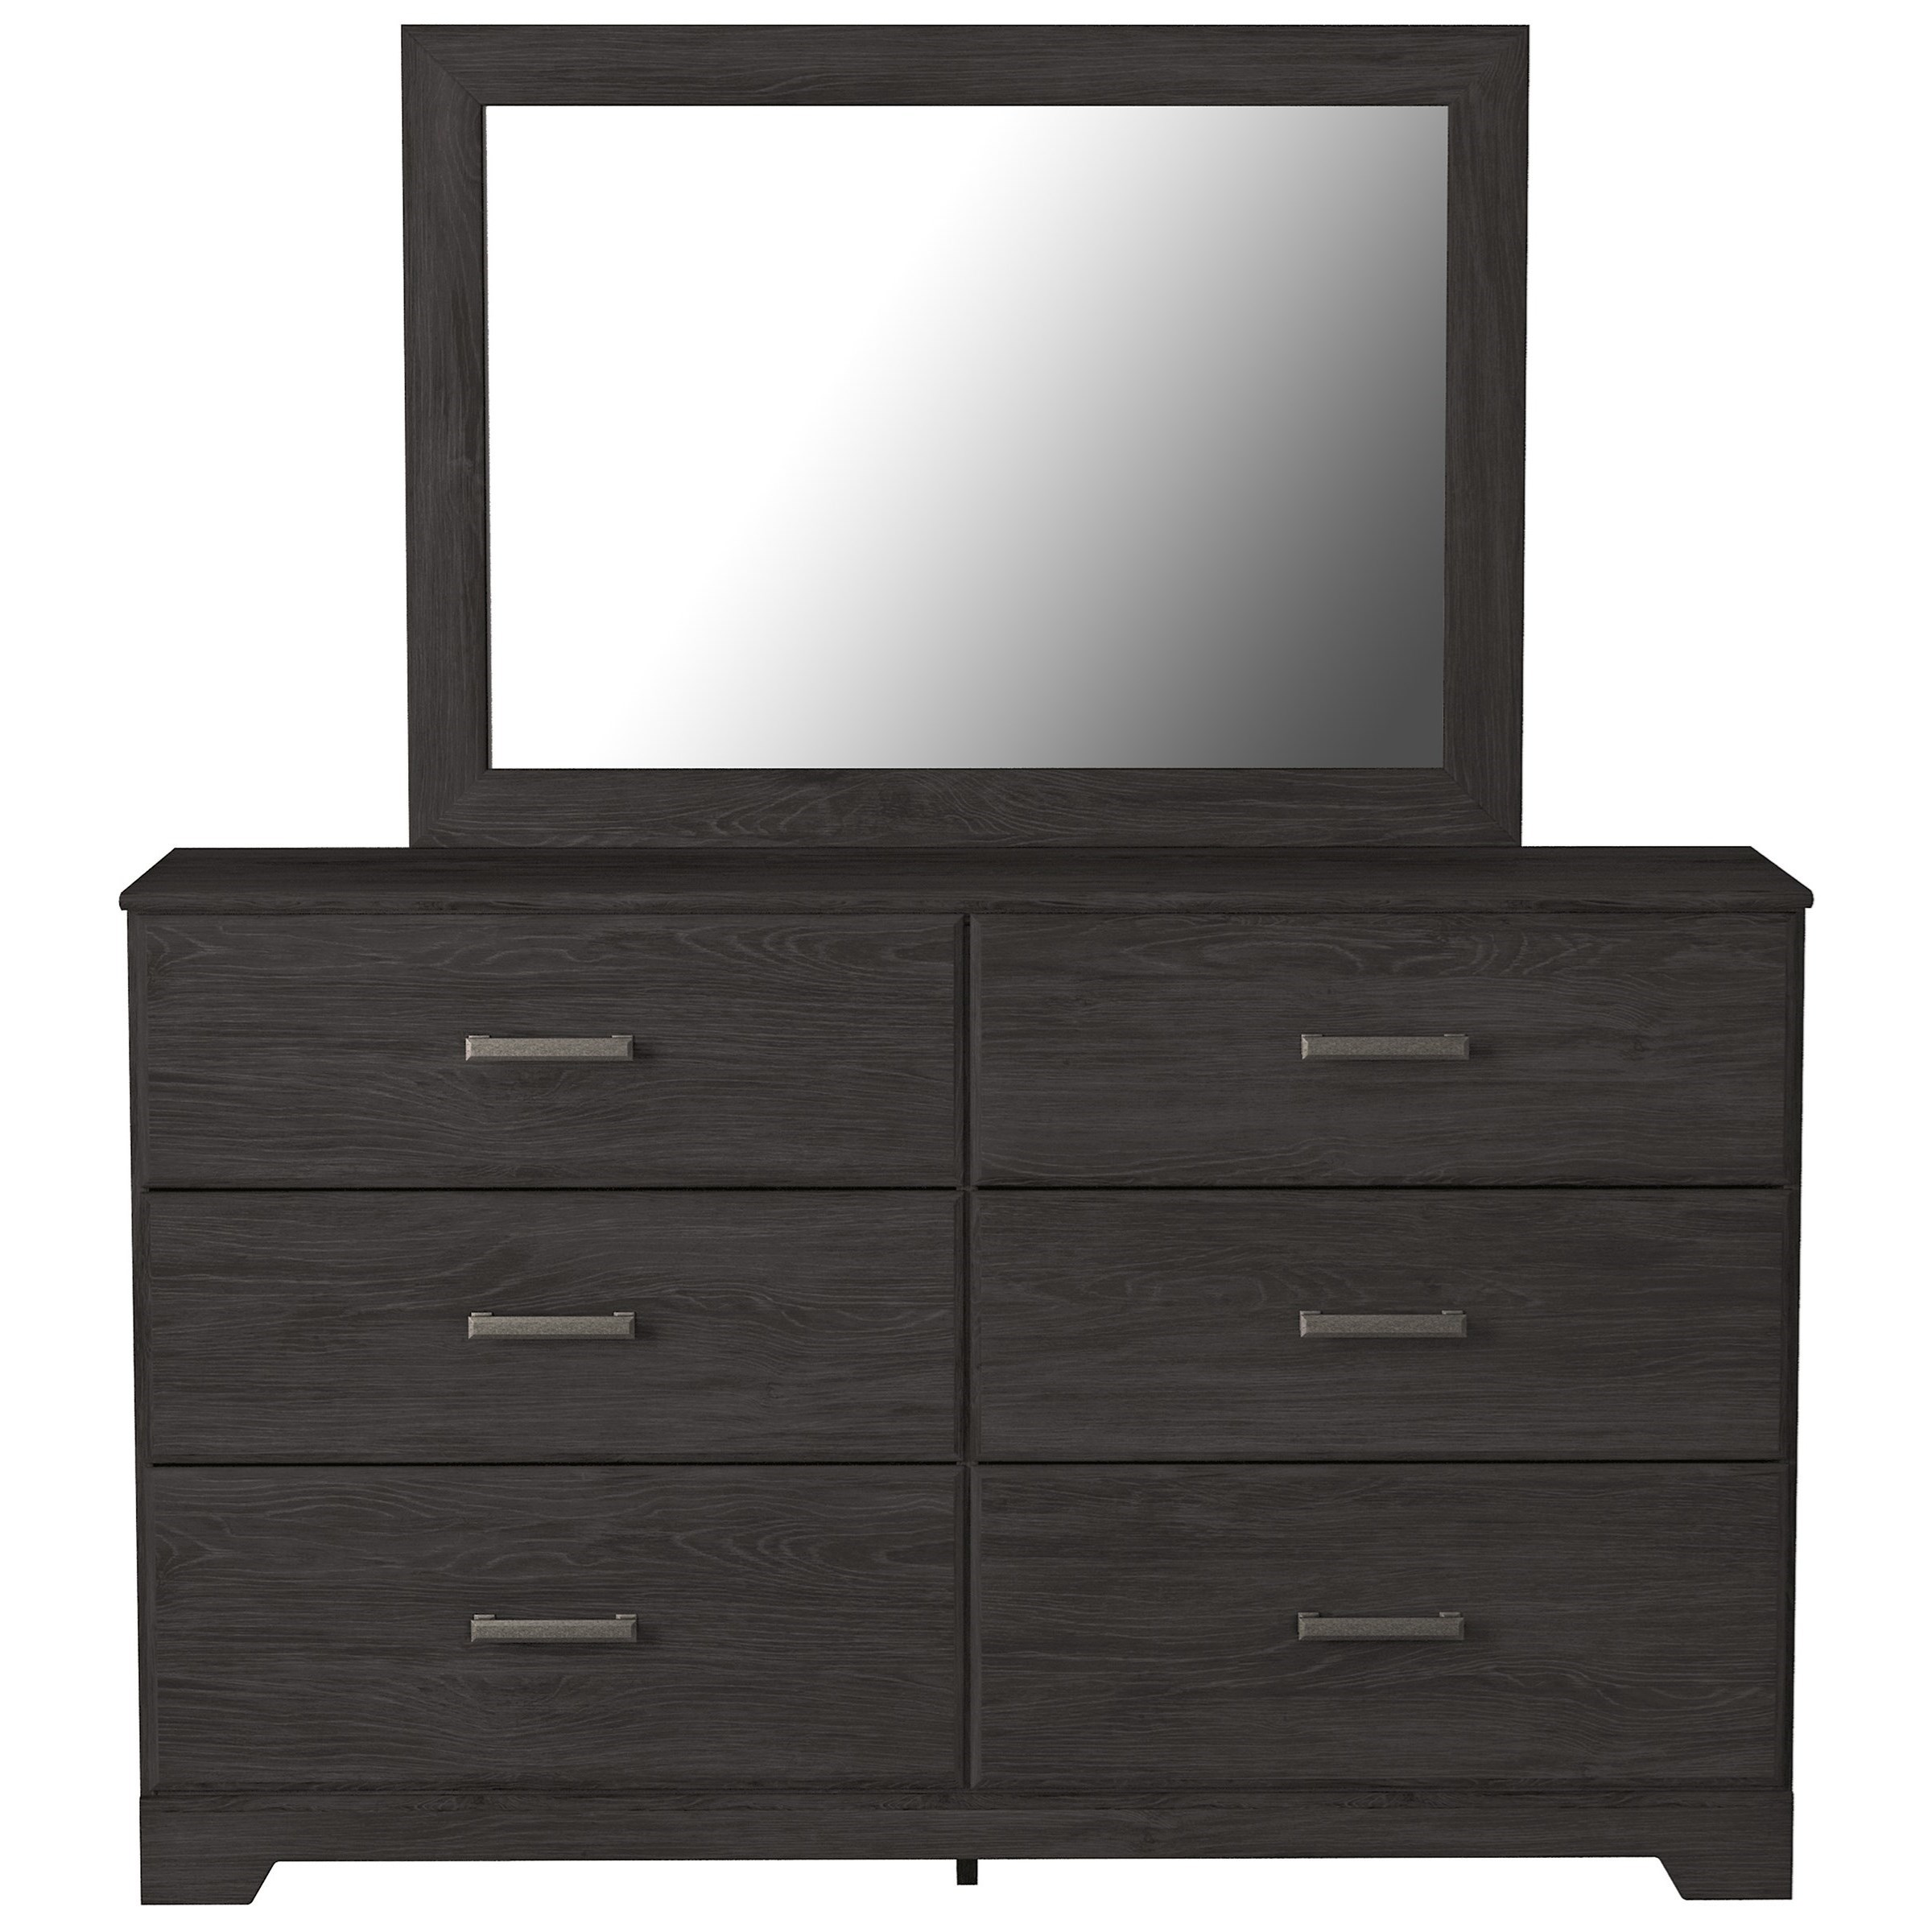 Belachime Dresser & Bedroom Mirror by Signature Design by Ashley at Zak's Warehouse Clearance Center